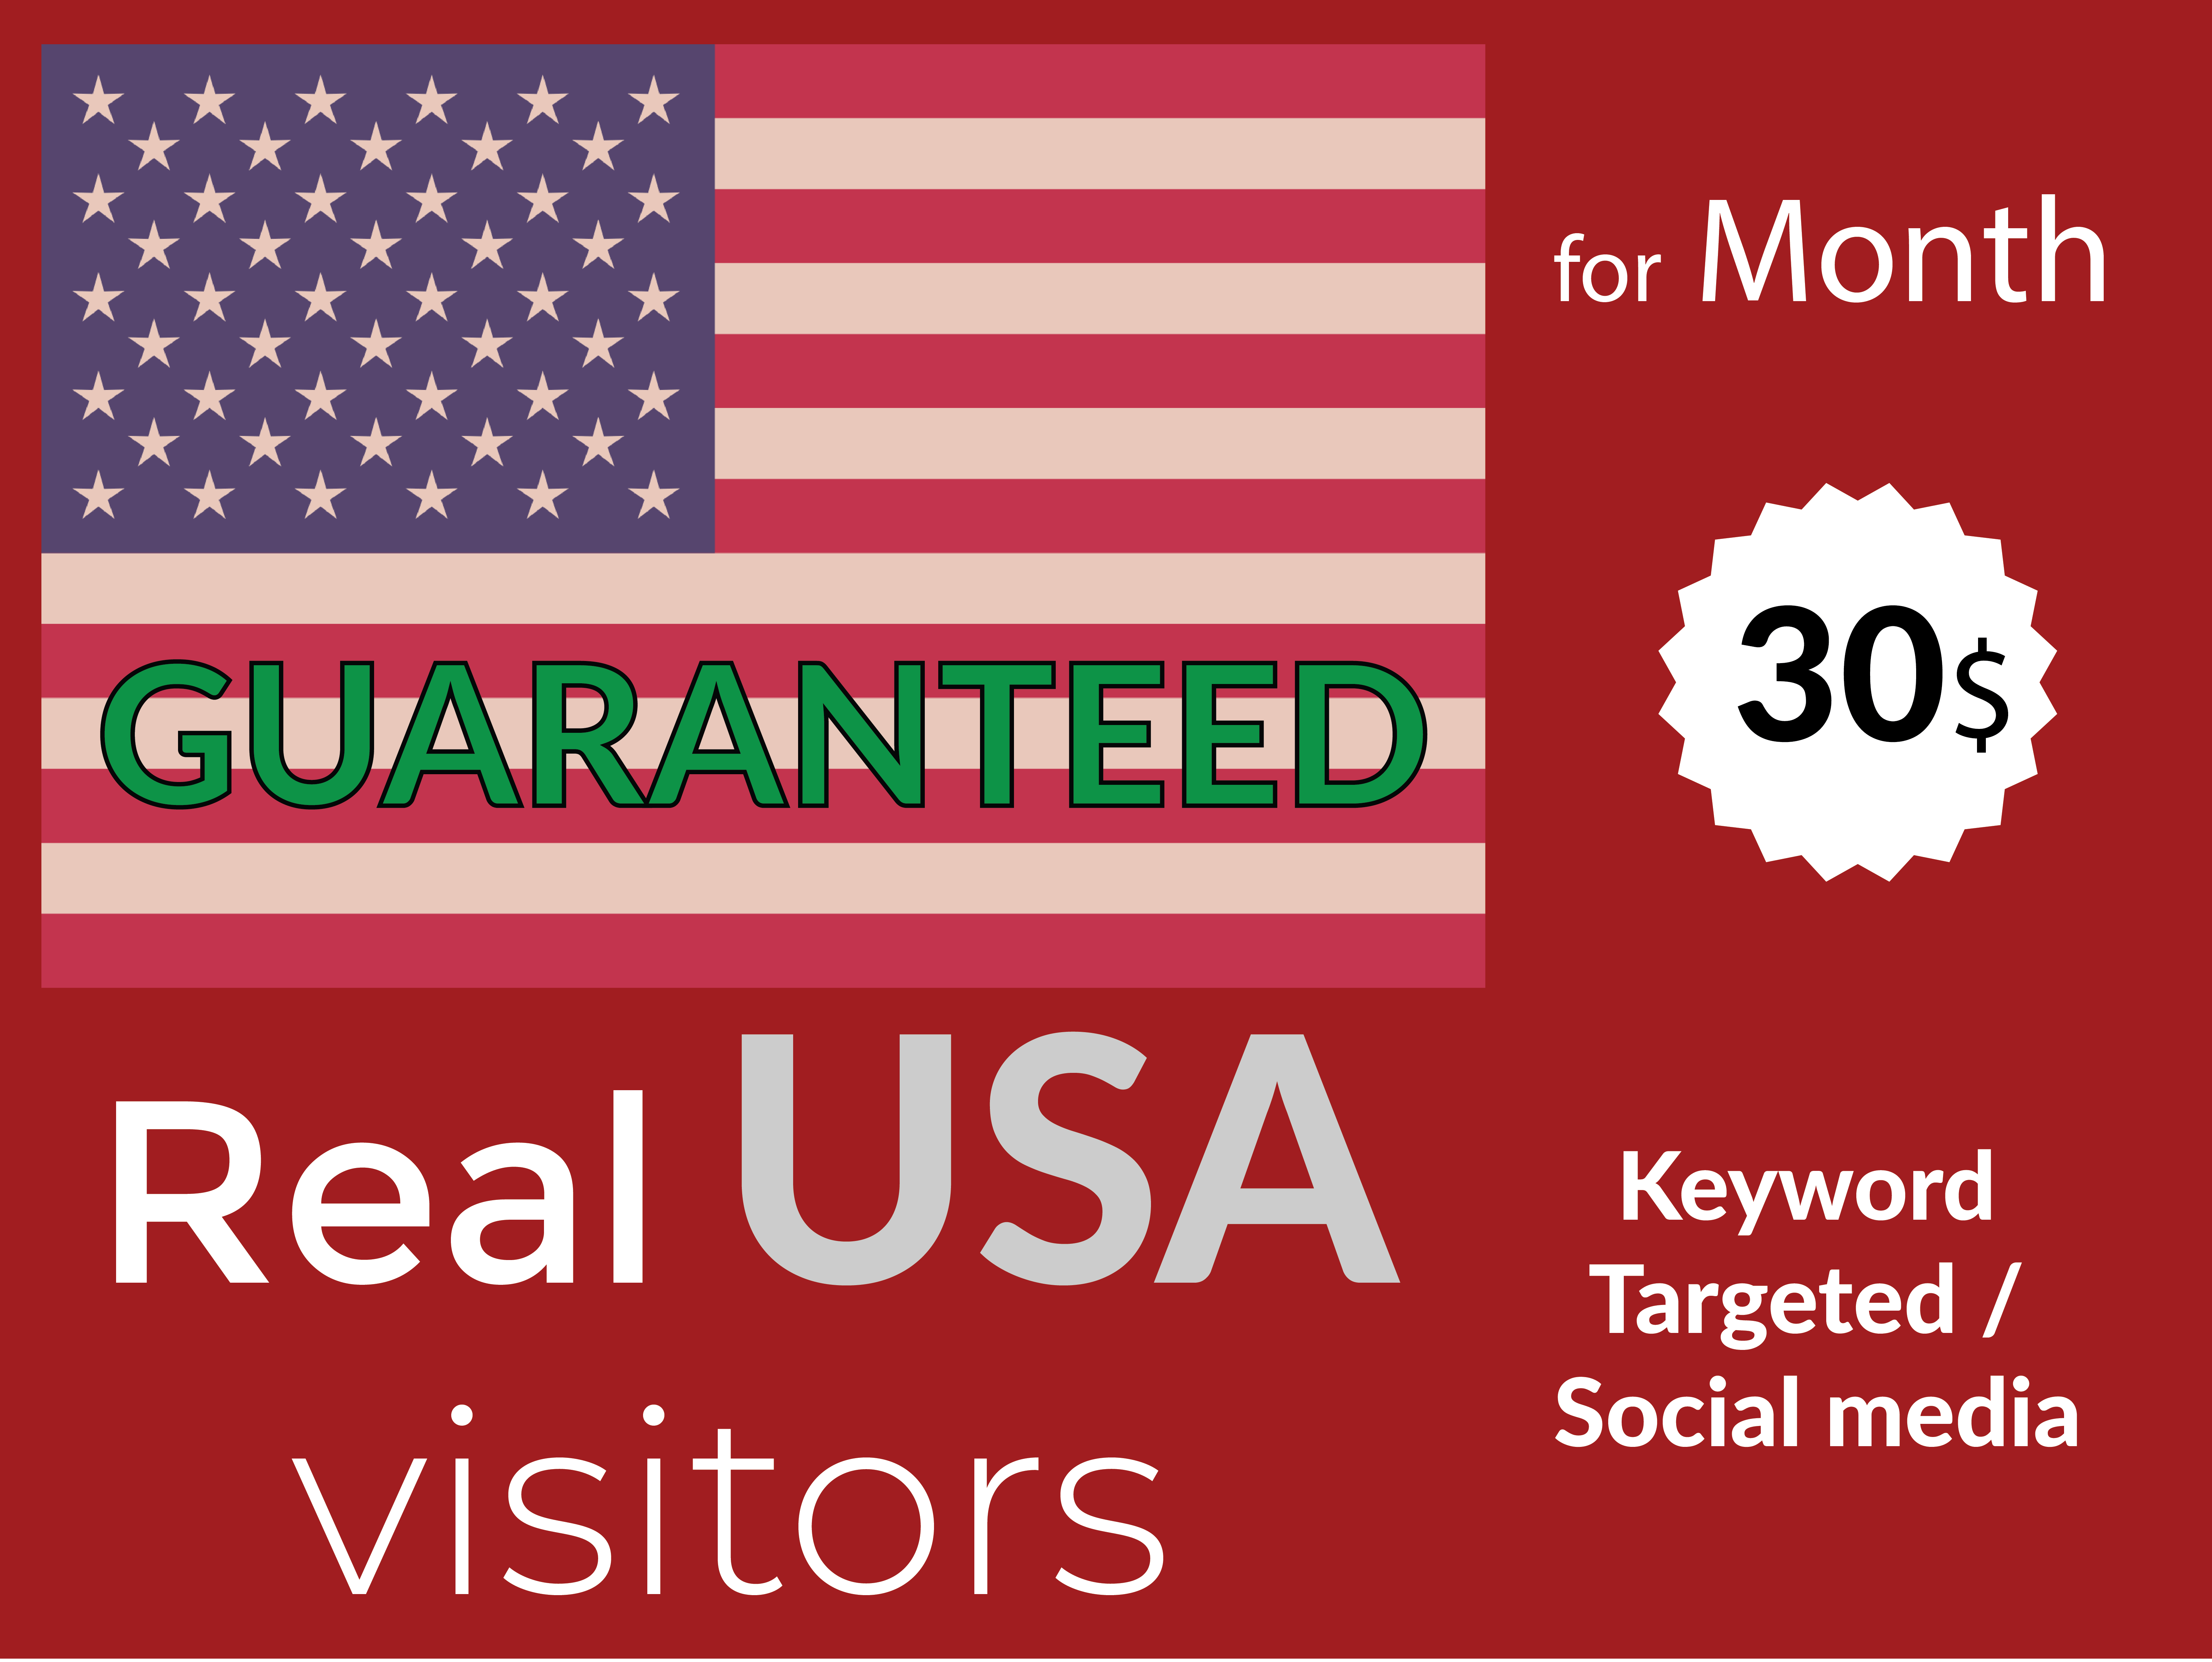 I will bring keyword targeted USA visitors for 1 month